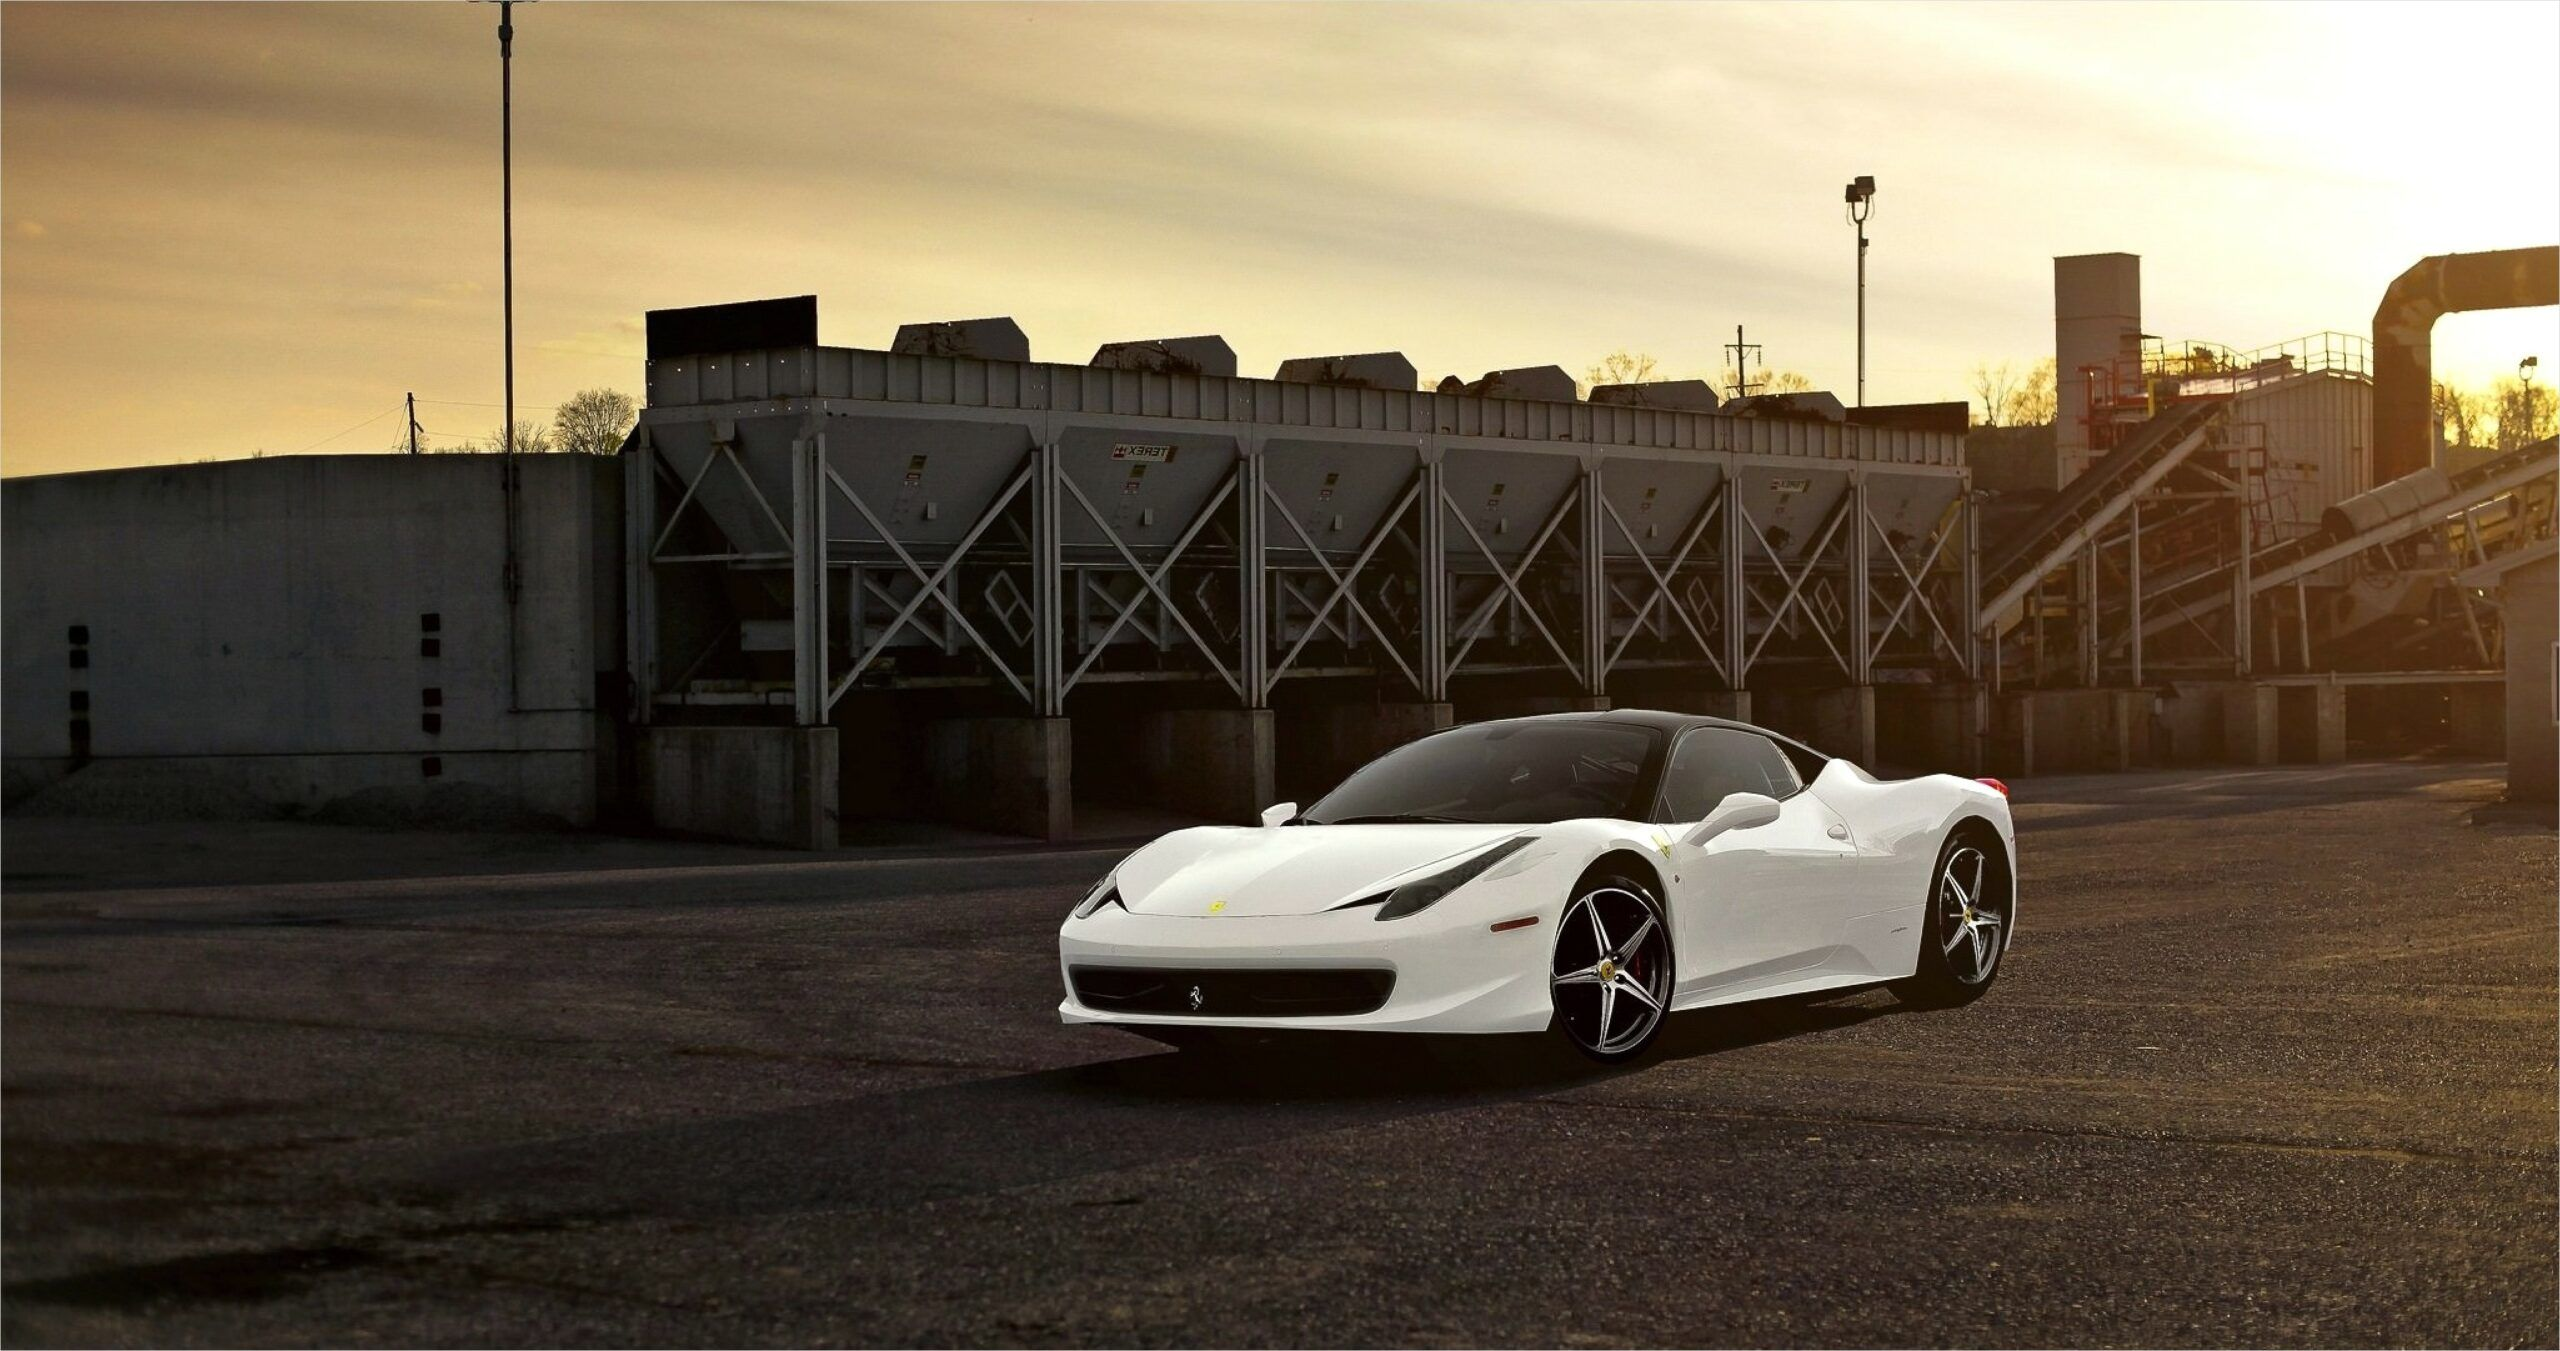 458 Speciale 4k Wallpaper In 2020 Ferrari 458 White Ferrari